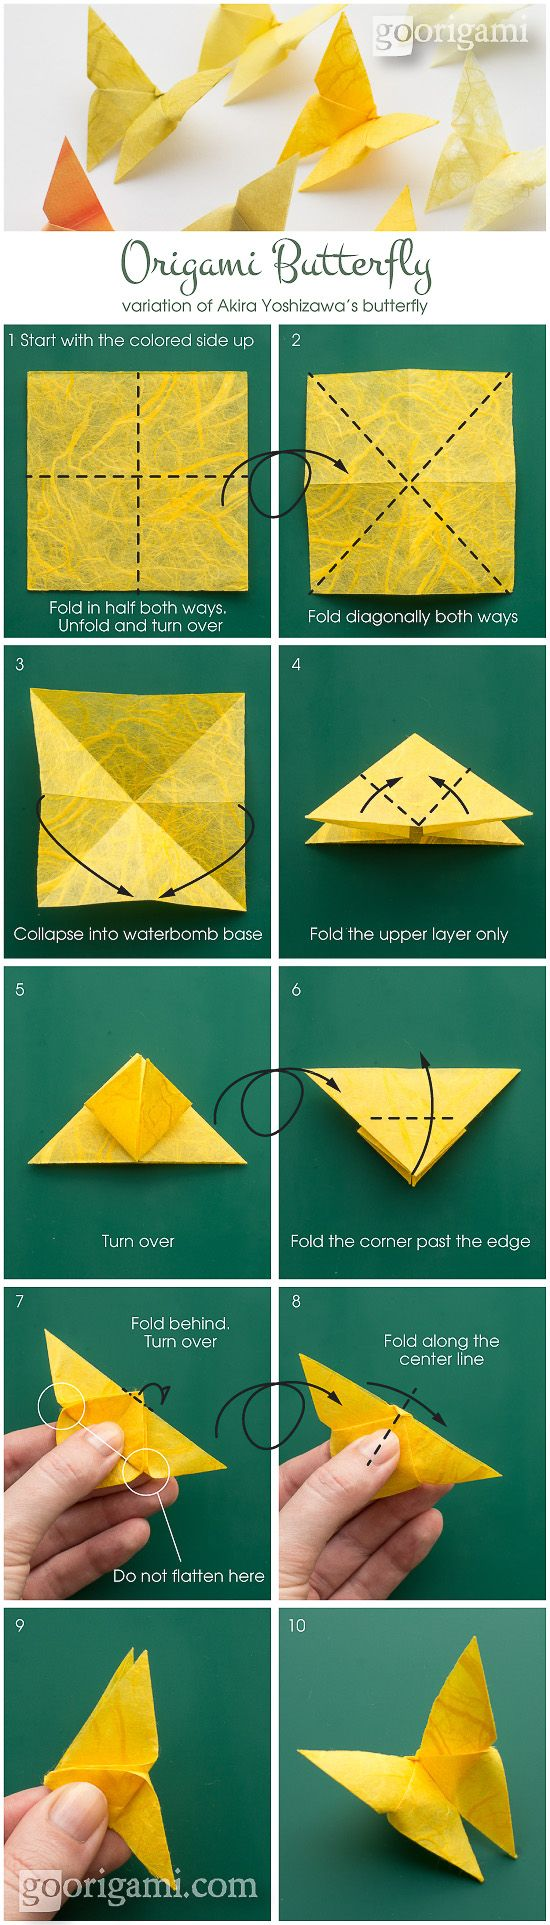 DIY: origami butterfly: Origami Butterfly, Idea, Diy Crafts, Origami Butterflies, Things, Butterflies Origami, Spring Crafts, Kid, Paper Butterflies